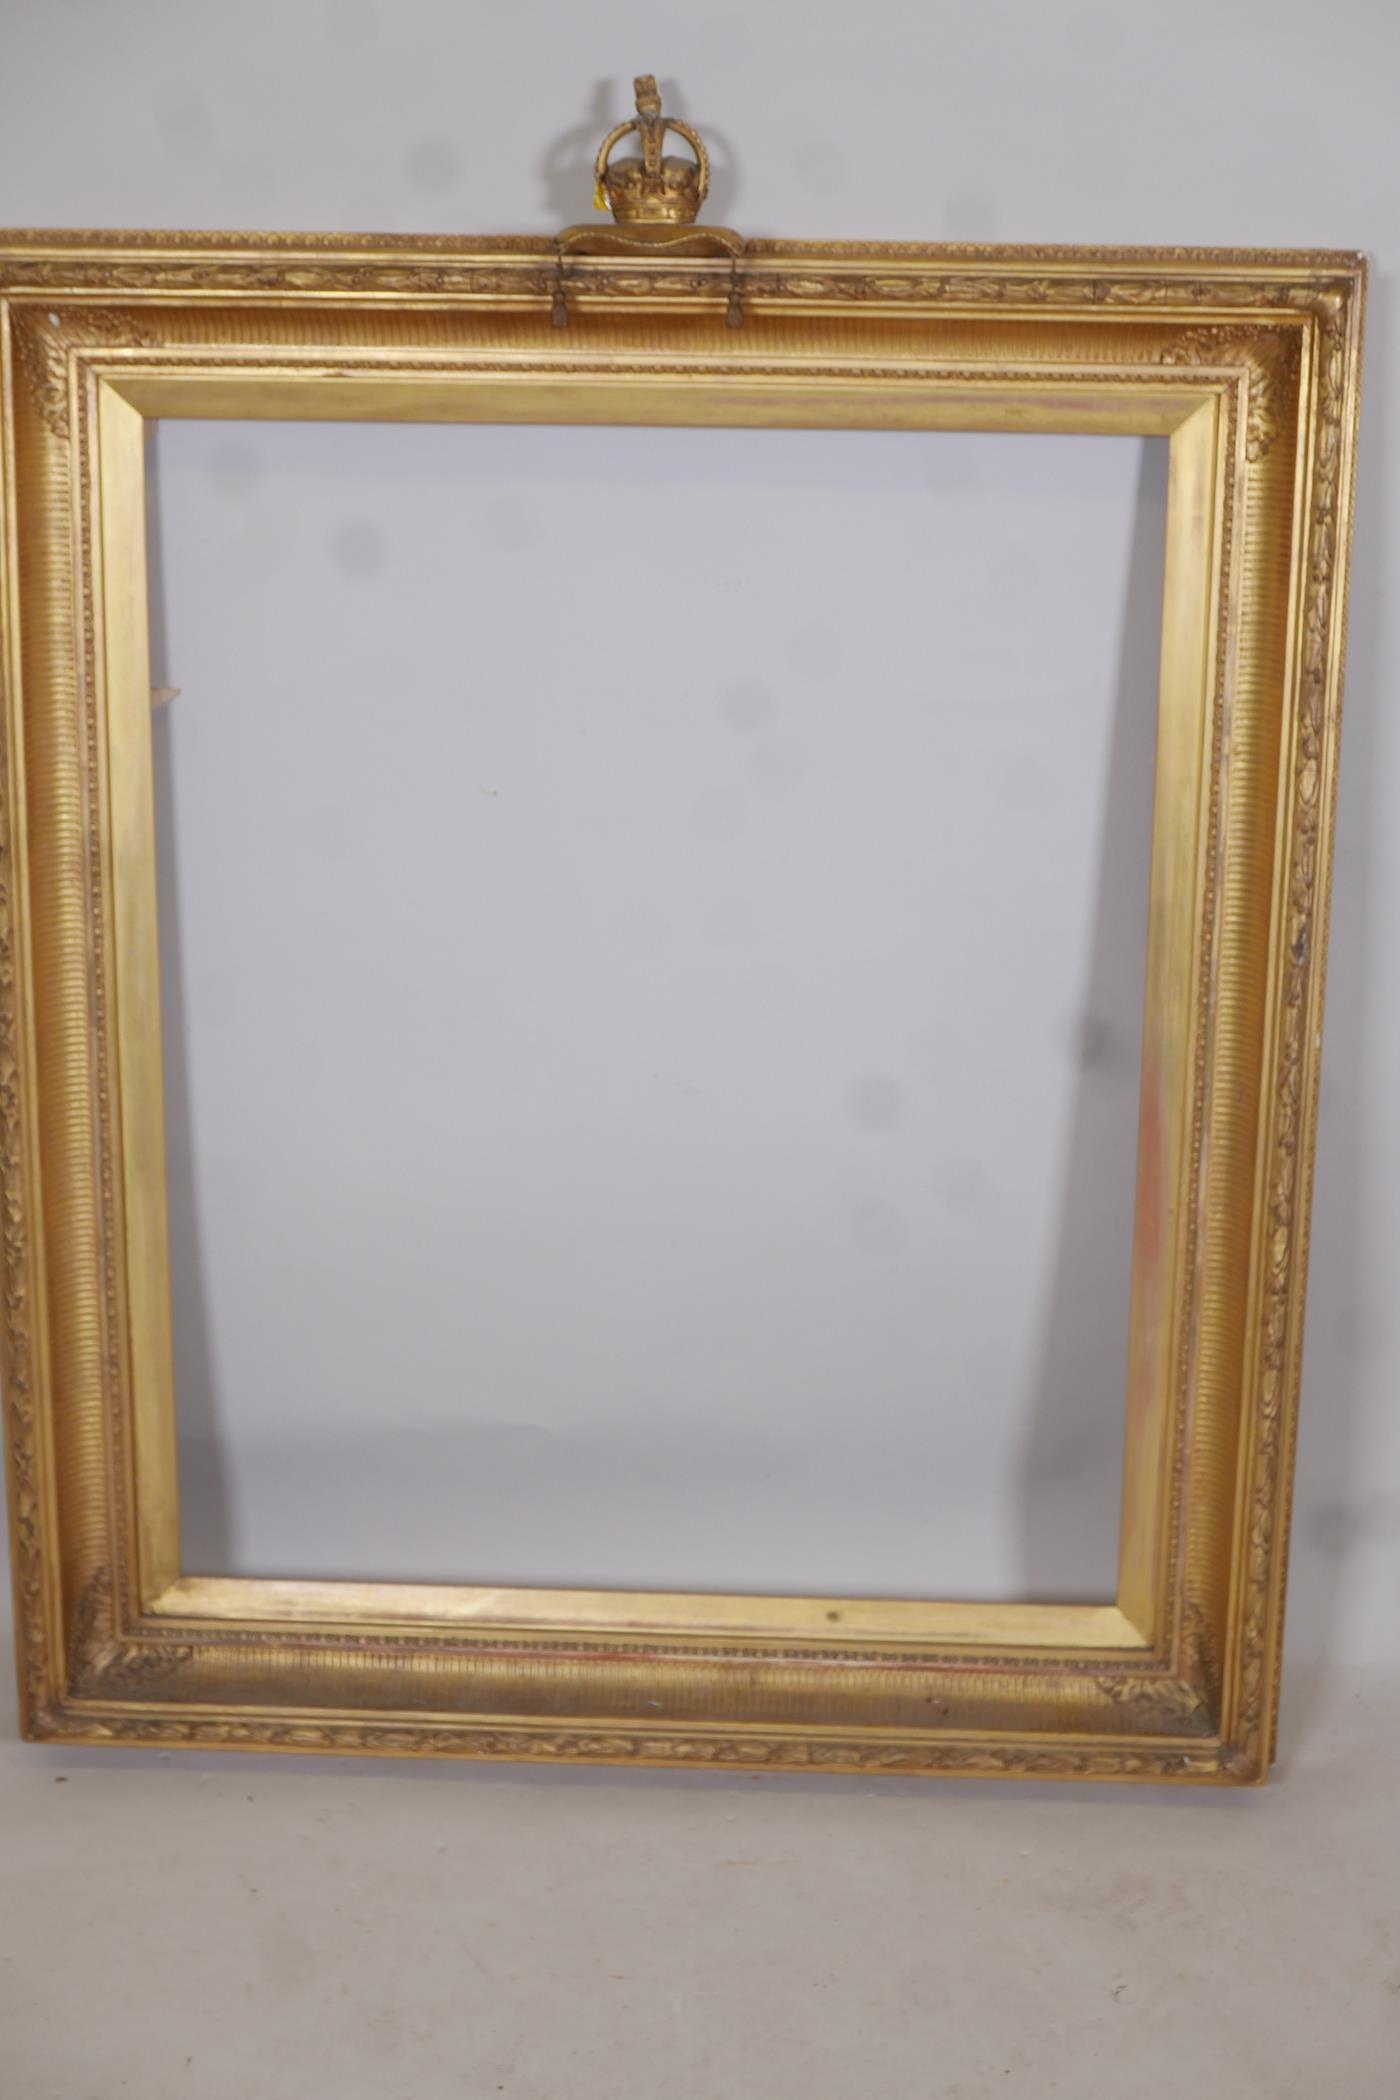 """A C19th gilt picture frame with crown and cushion finial, aperture 27"""" x 33"""" - Image 2 of 3"""